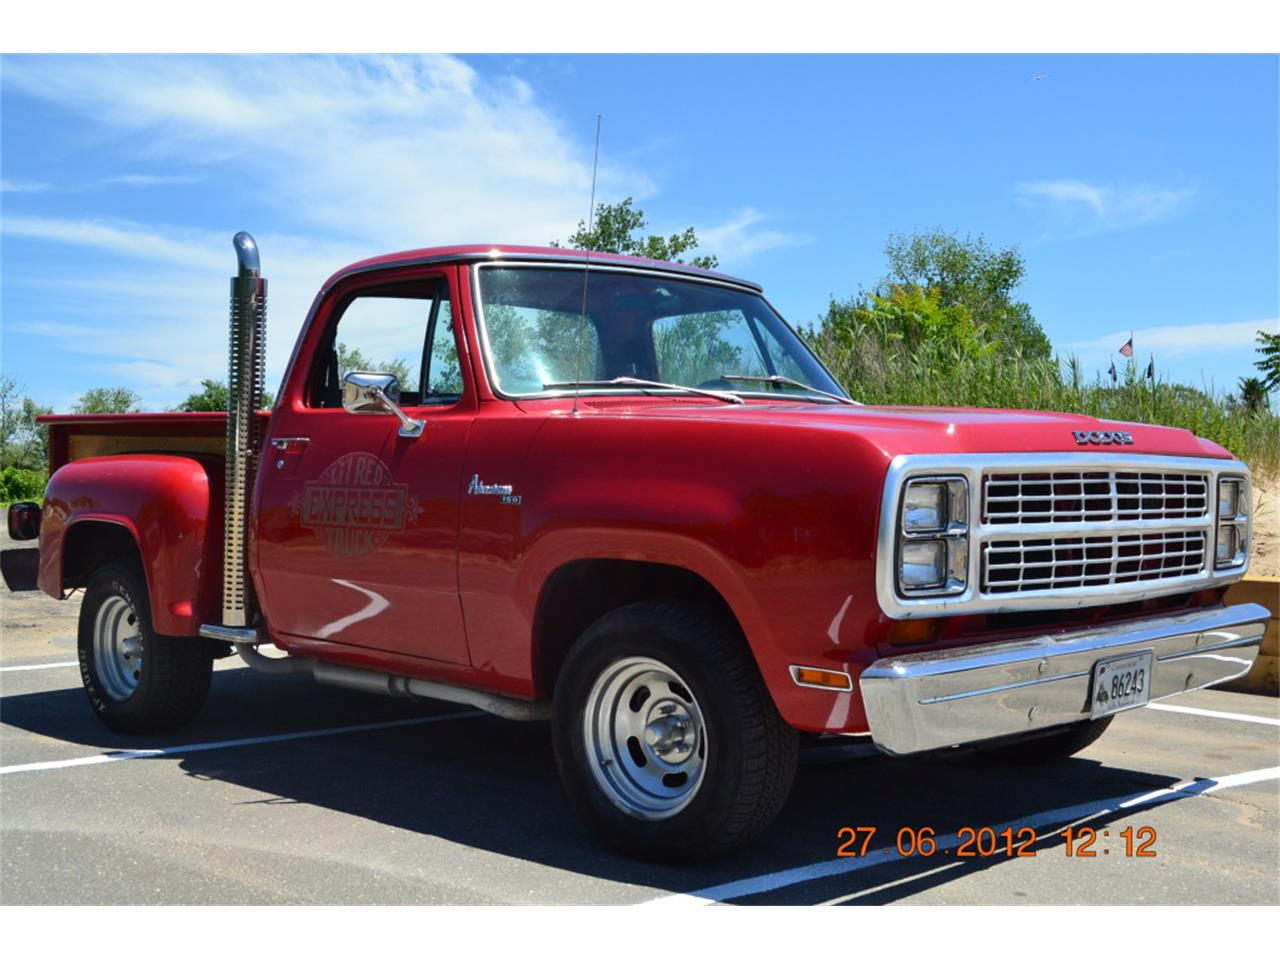 Large Picture of 1979 Dodge Little Red Express located in Connecticut Offered by a Private Seller - EHSU